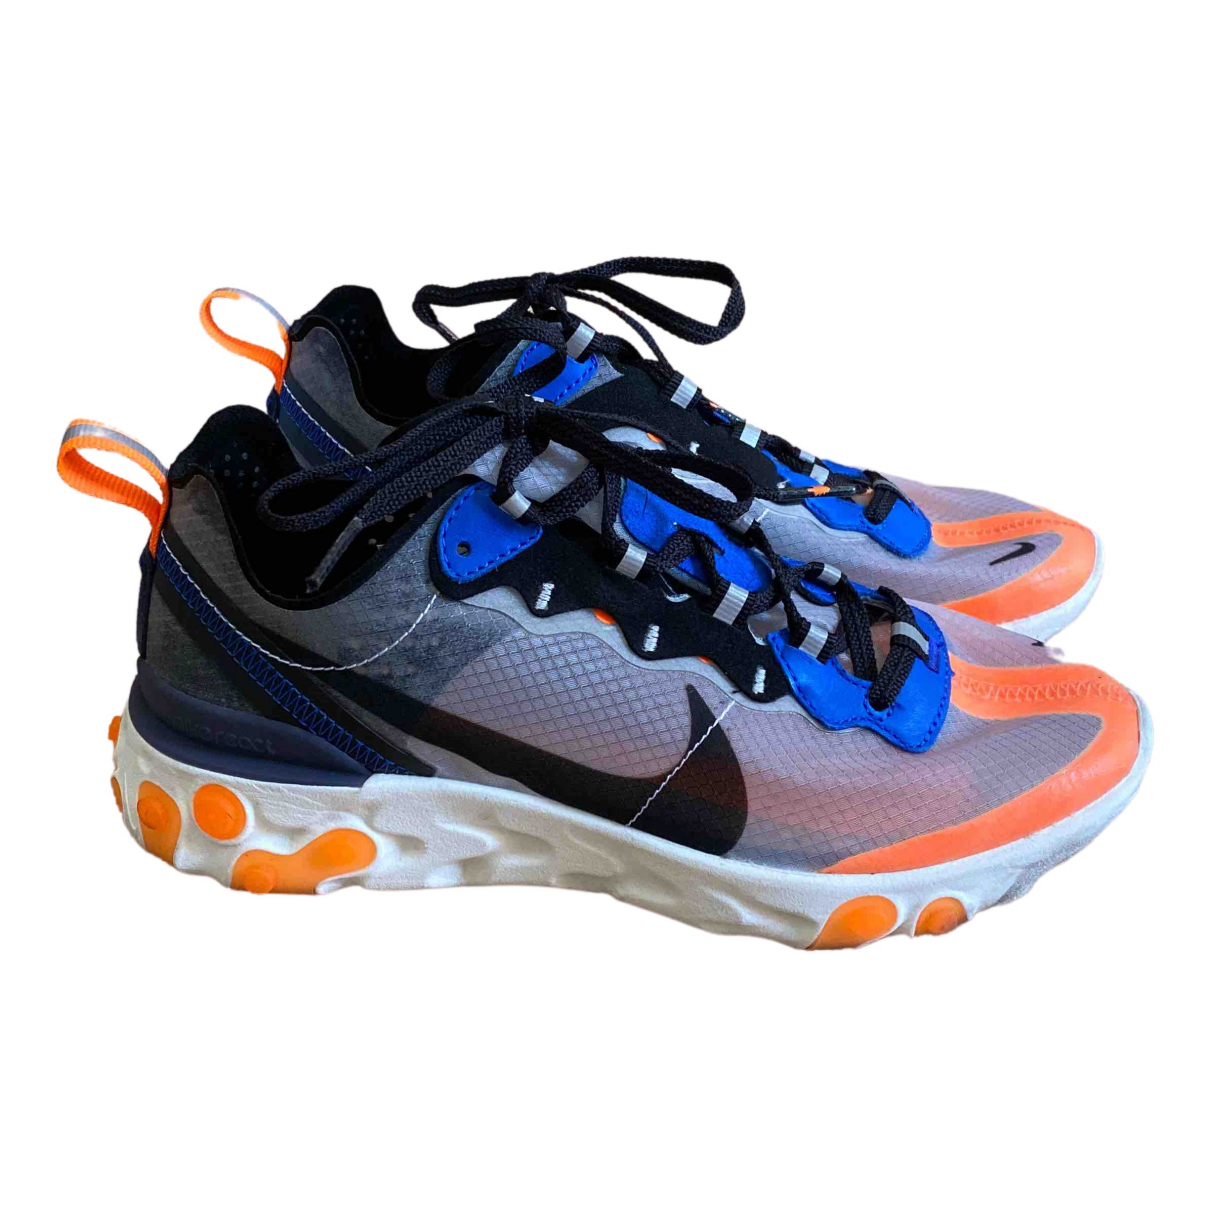 Nike React Element 87  Multicolour Trainers for Women 37.5 EU